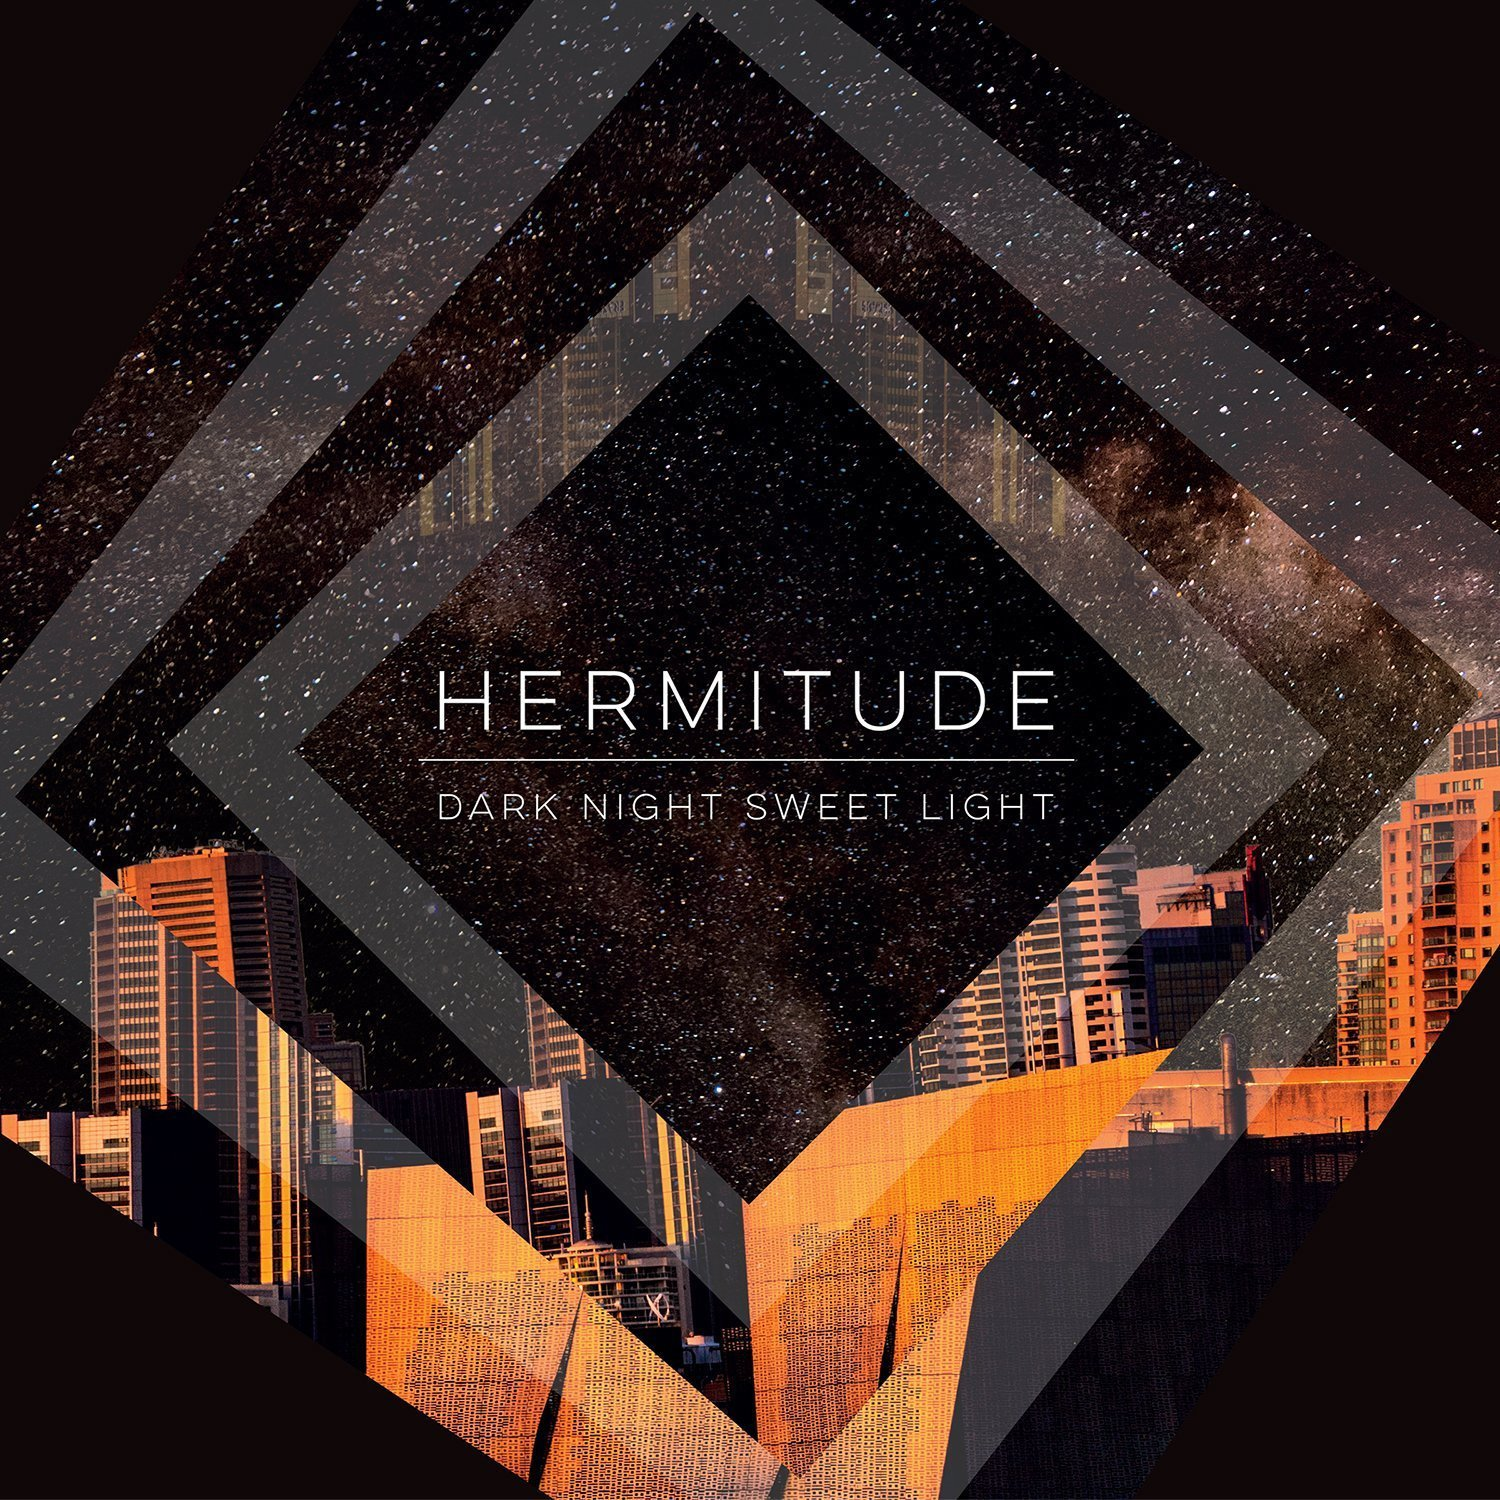 Hermitude - Dark Night Sweet Light